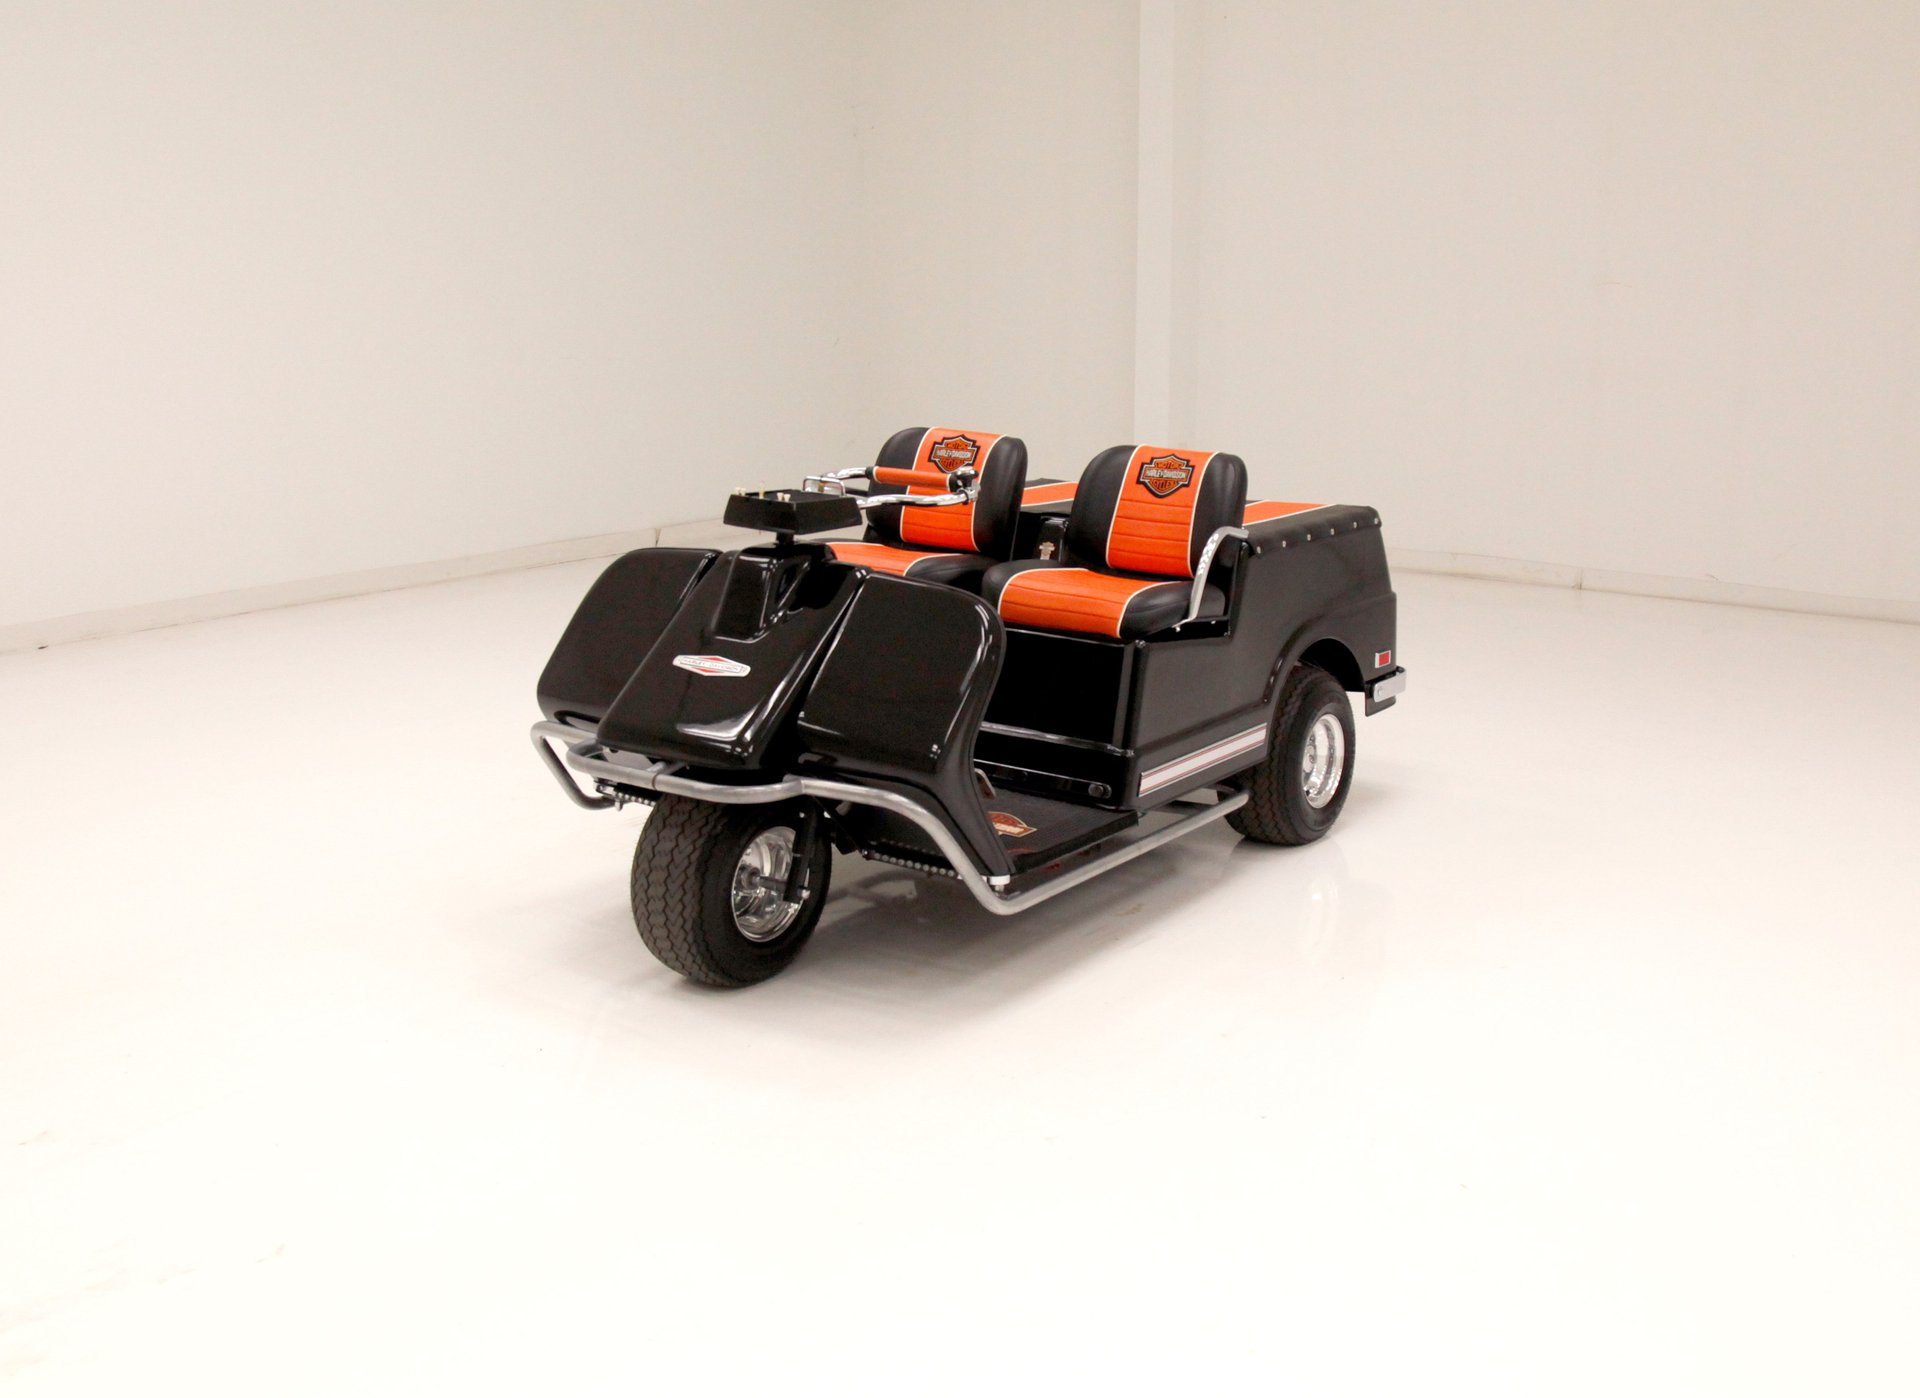 1970 Harley Davidson D3 Golf Car